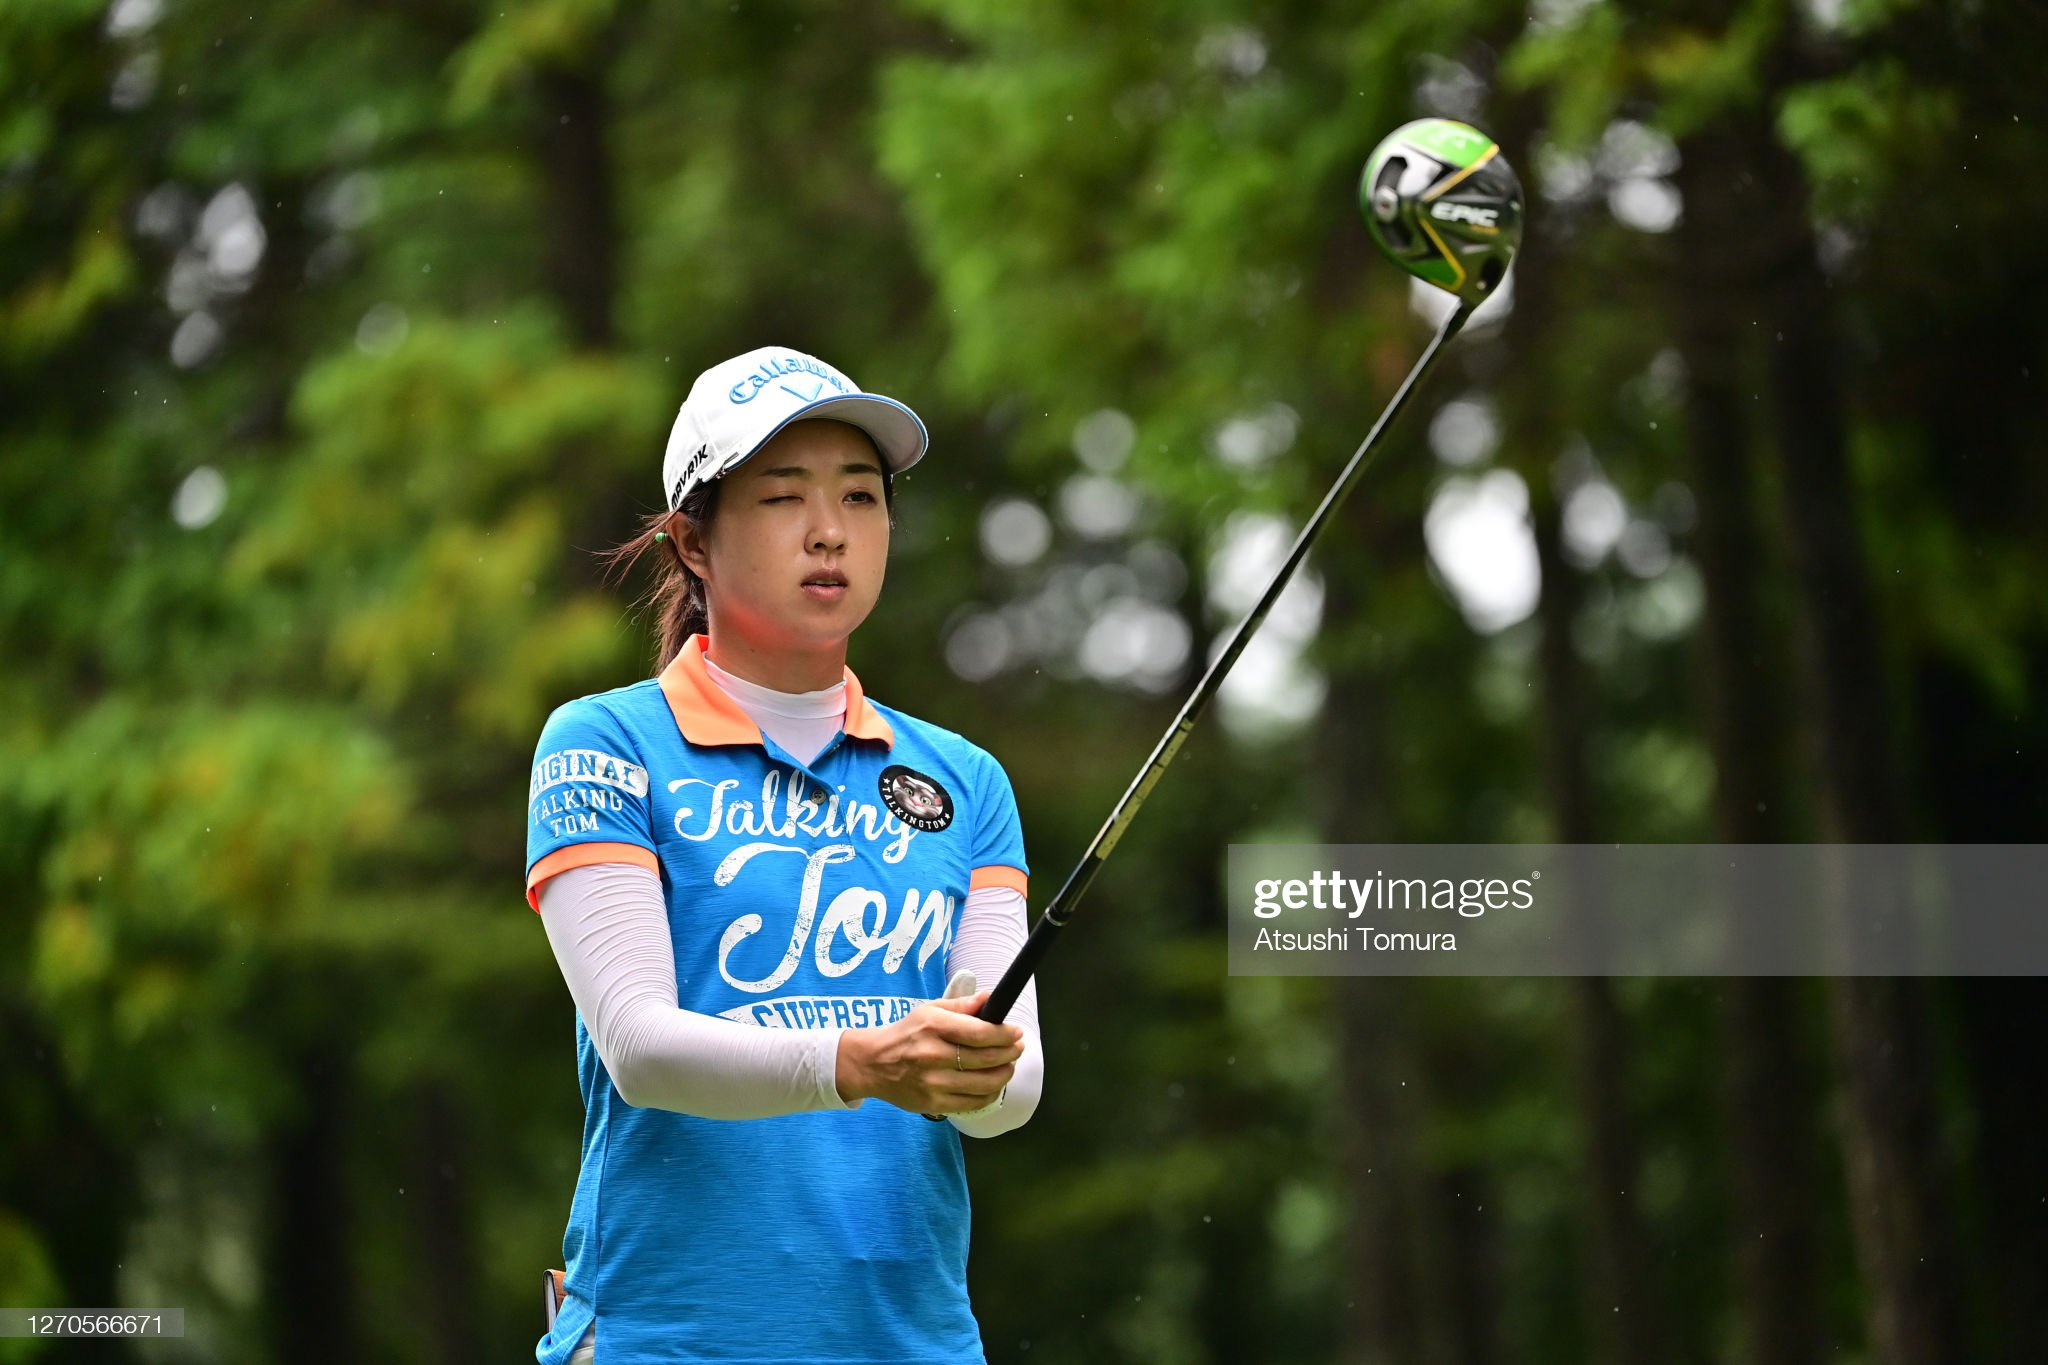 https://media.gettyimages.com/photos/solar-lee-of-south-korea-prepares-for-her-tee-shot-on-the-18th-hole-picture-id1270566671?s=2048x2048